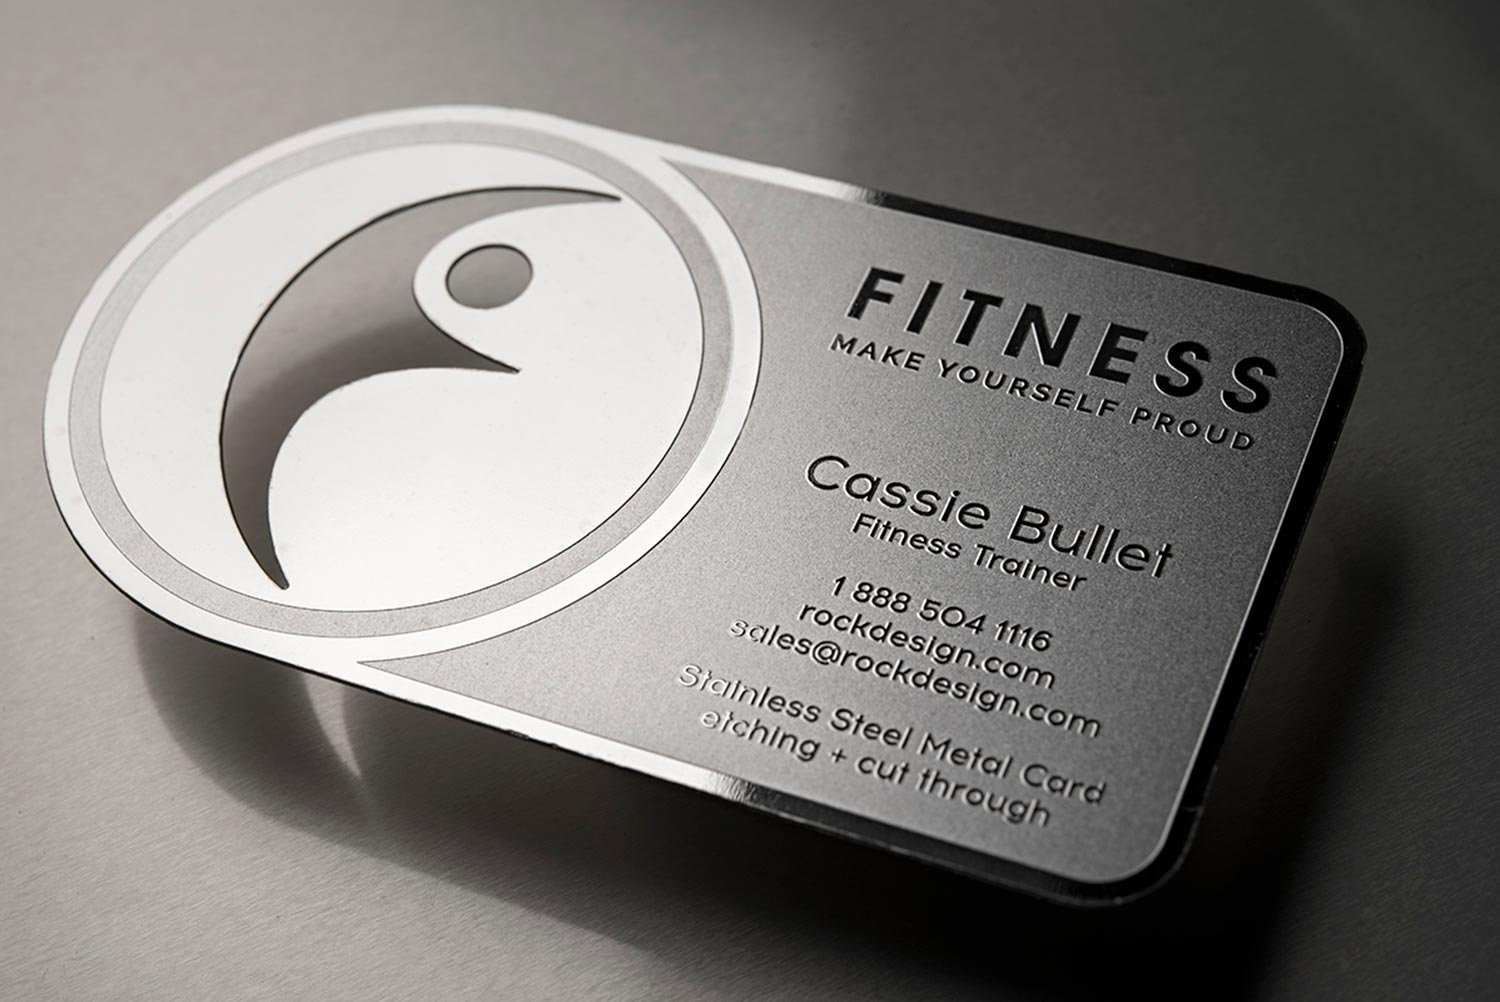 Personal Training Business Cards Unique Free Innovative Stainless Steel Personal Trainer Business Card Template Fitness